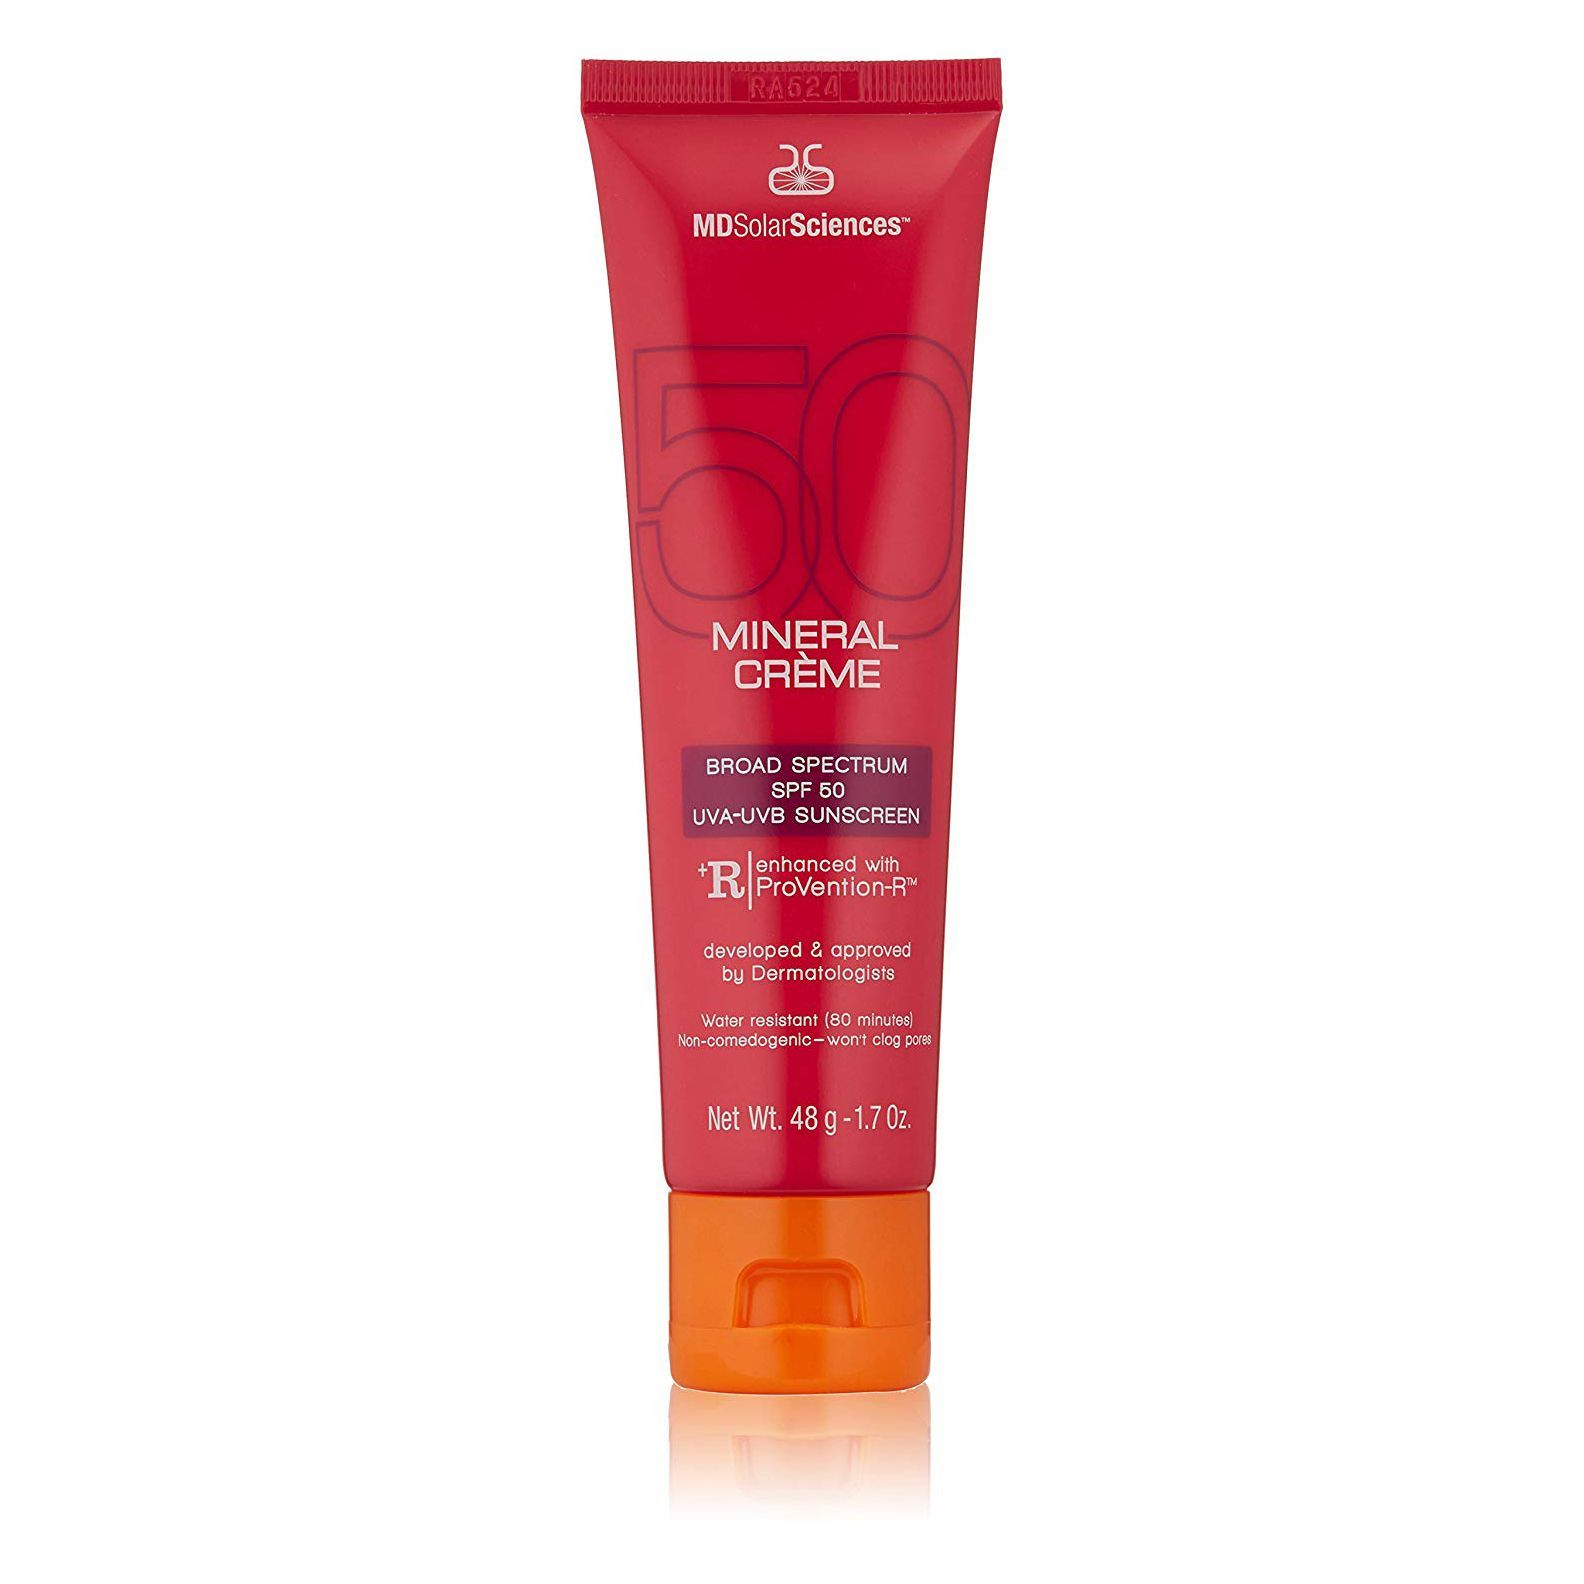 Mdsolarsciences Mineral Creme Spf 50 Face Sunscreen